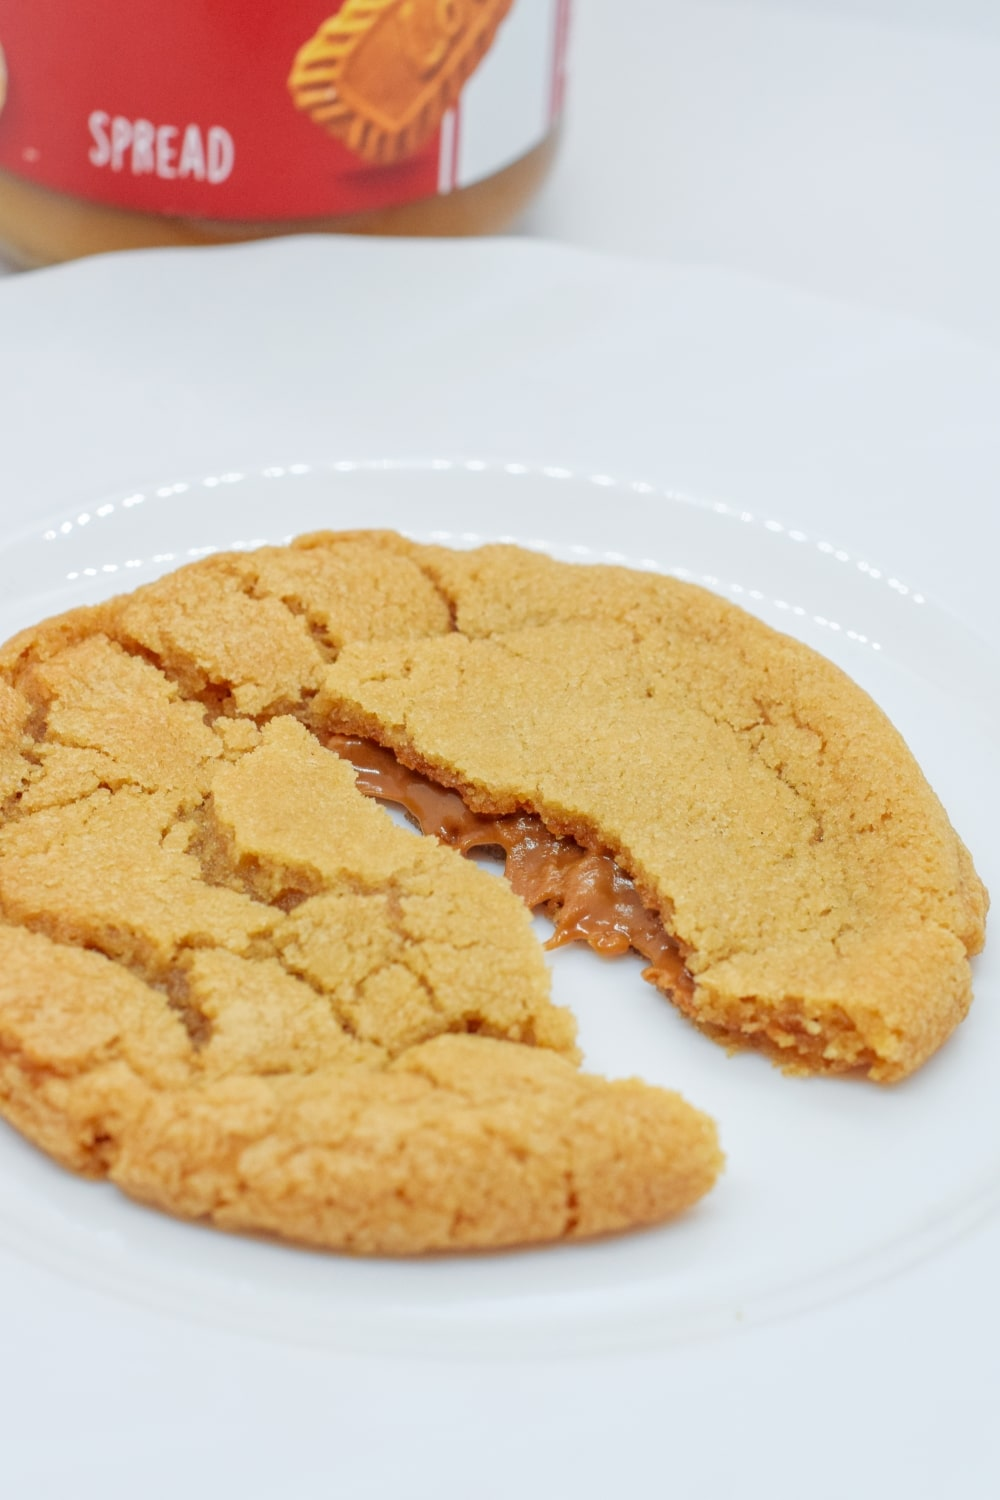 Easy Homemade Biscoff Stuffed Vegan Cookies without Weird Ingredients - plant-based recipe